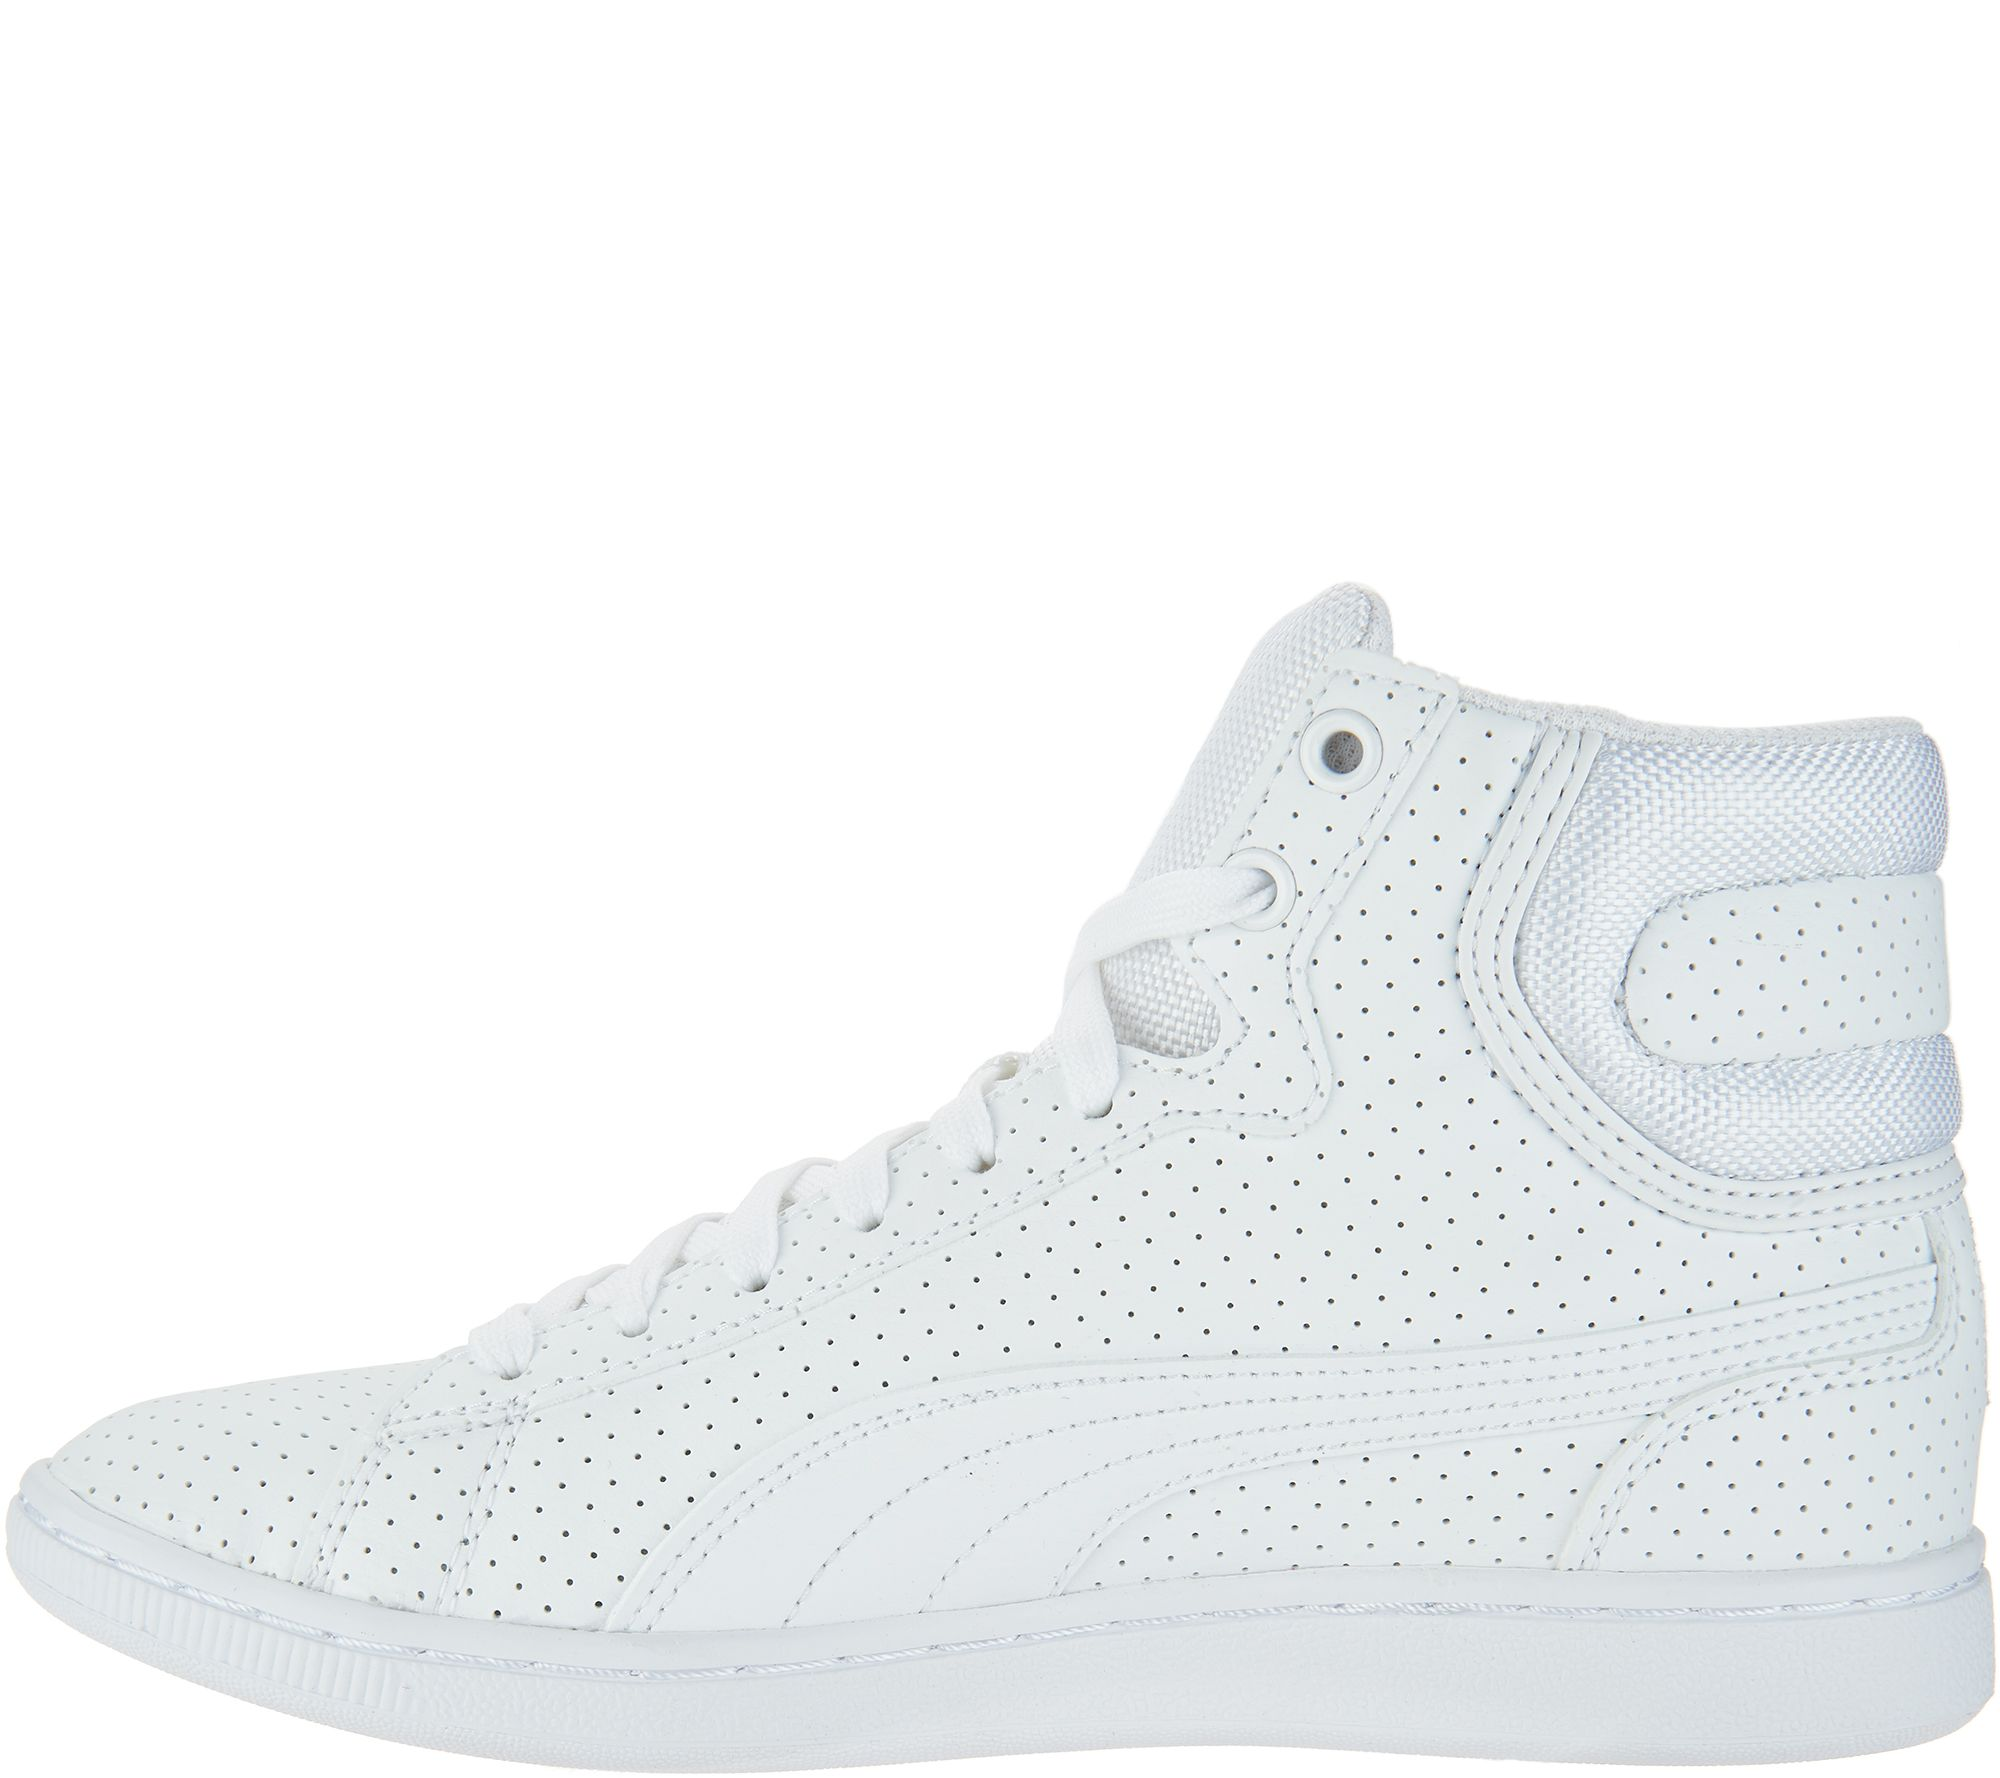 caa96db9a9a PUMA Hightop Sneakers - Vikky Mid Perforated - Page 1 — QVC.com